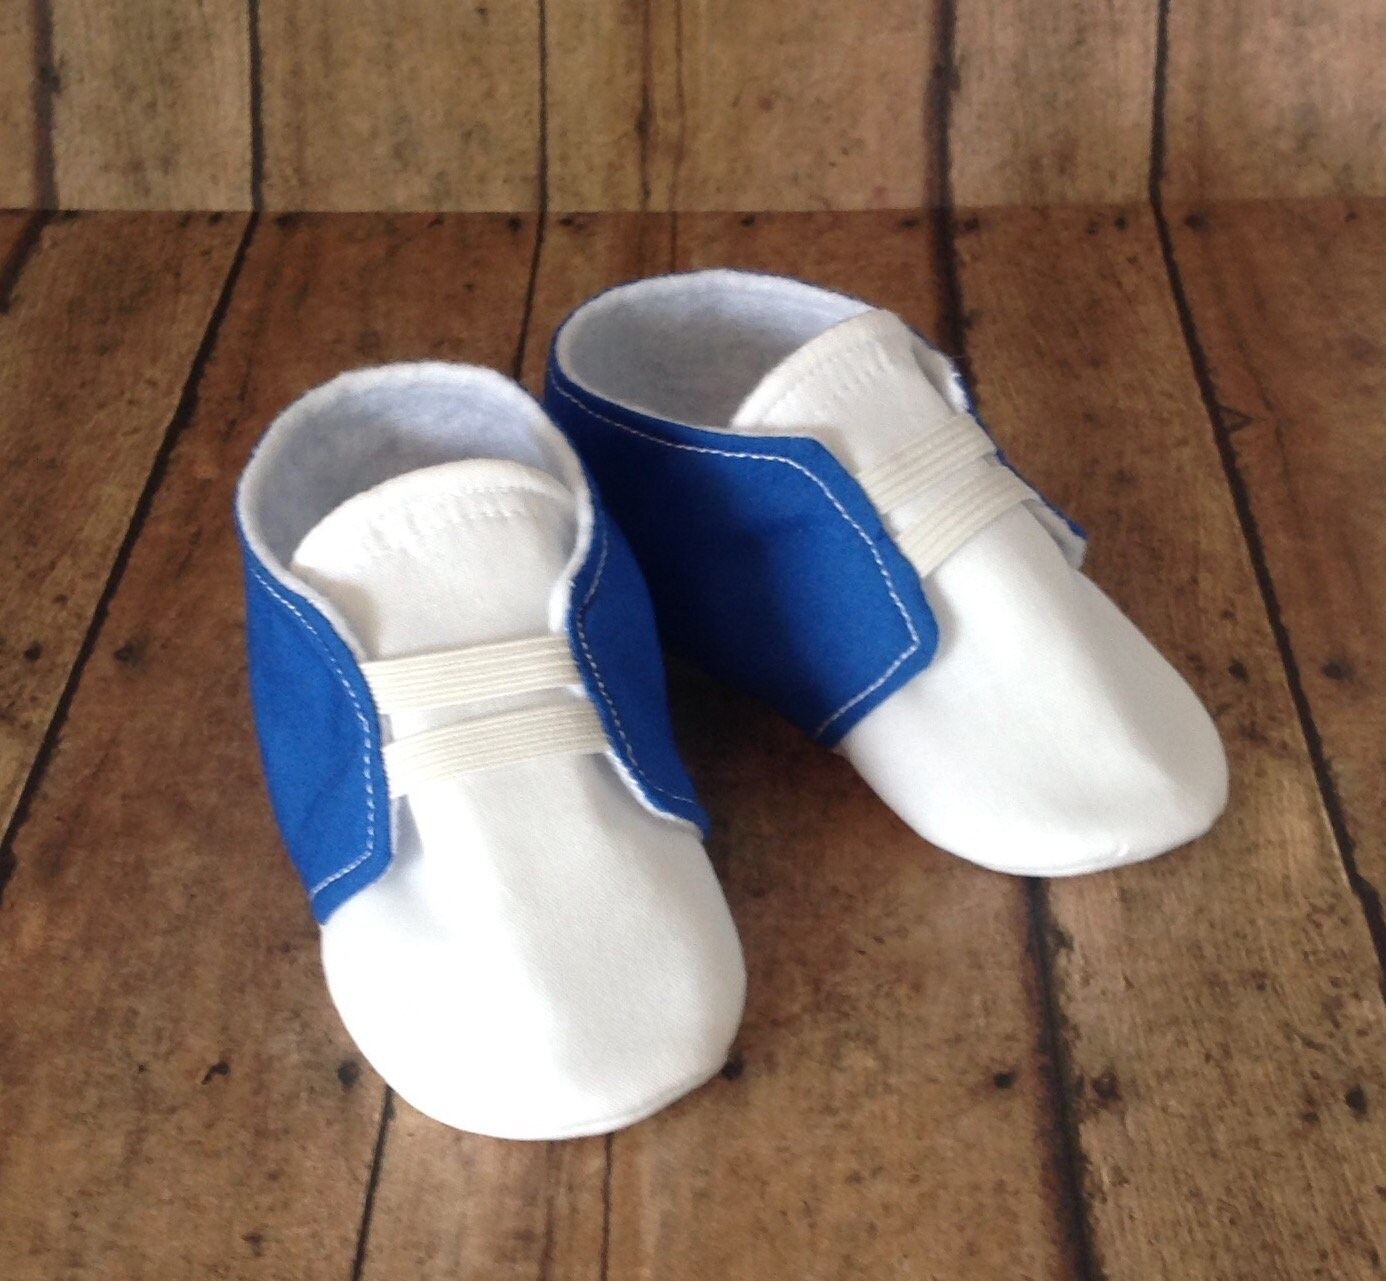 Newborn Elastic Shoes Blue White Baby Shoes With Elastic Newborn Size Up To 18 Months